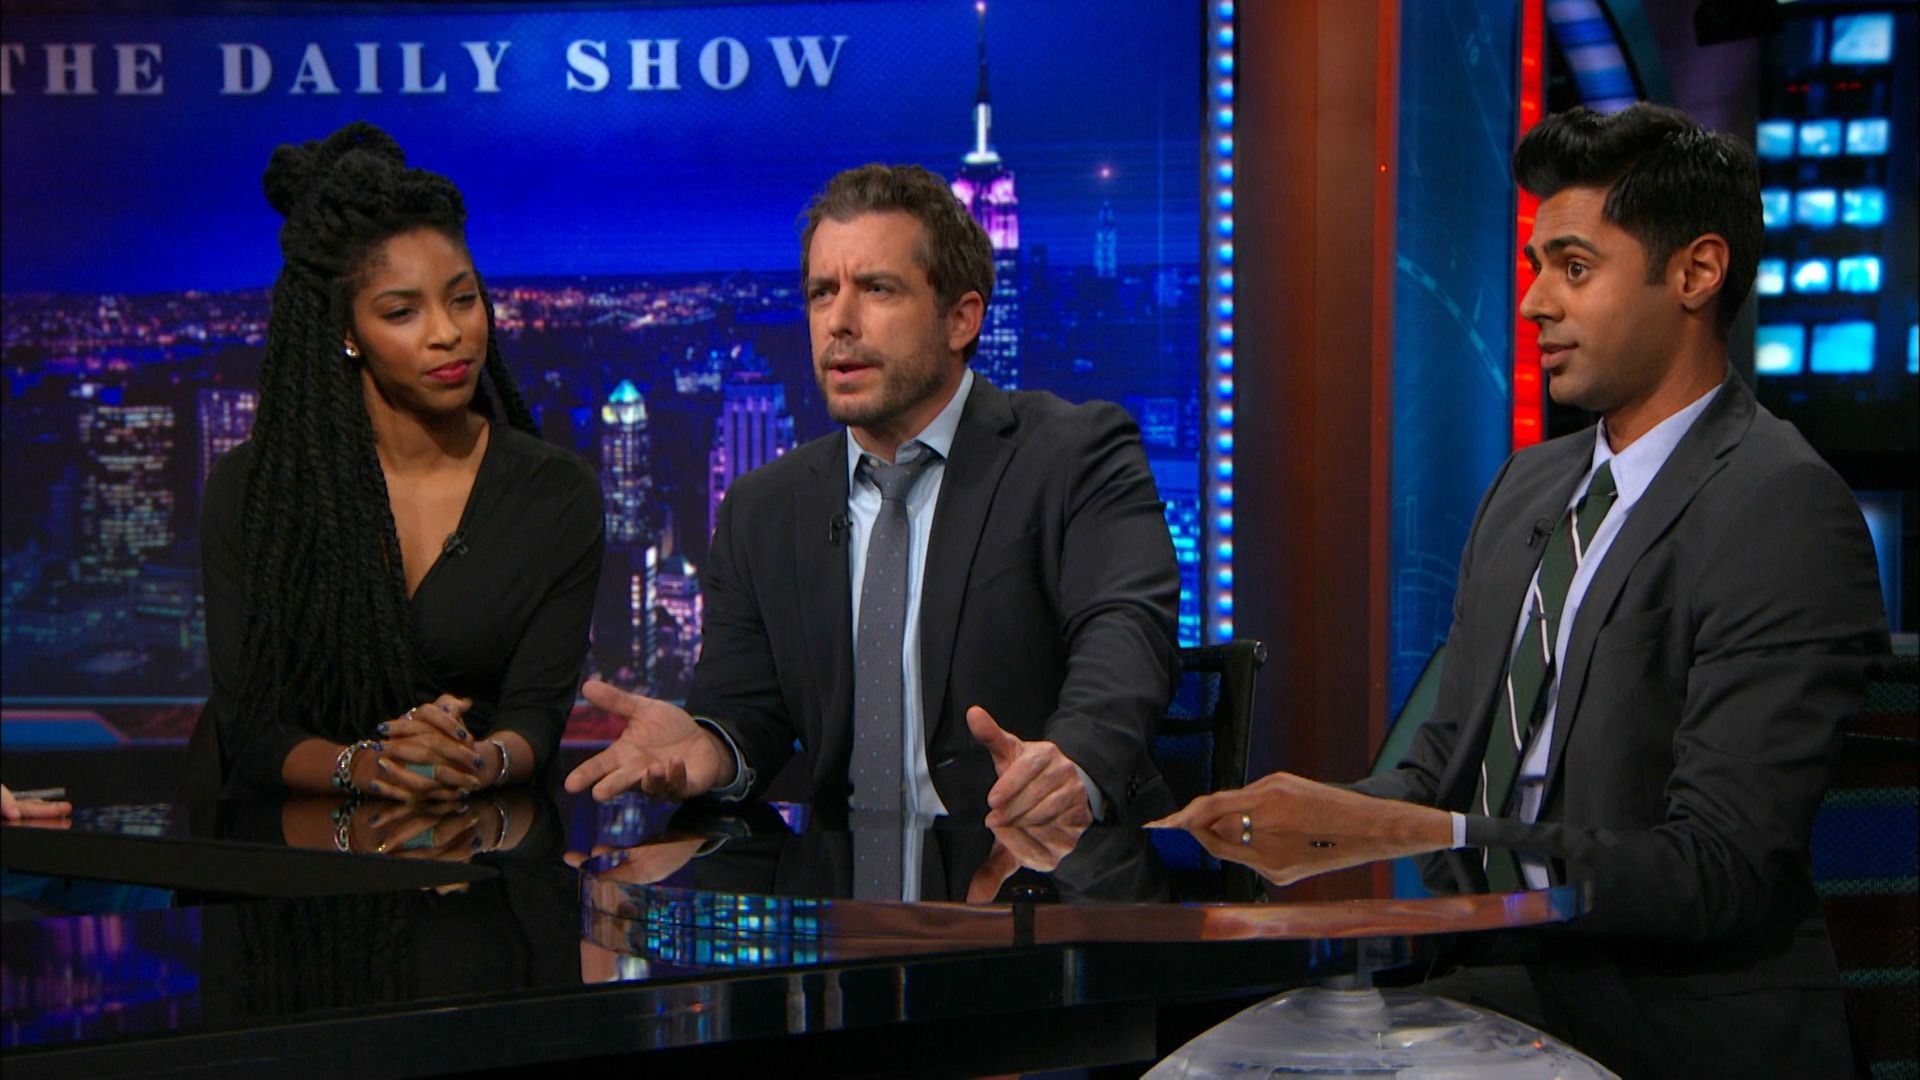 thedailyshow